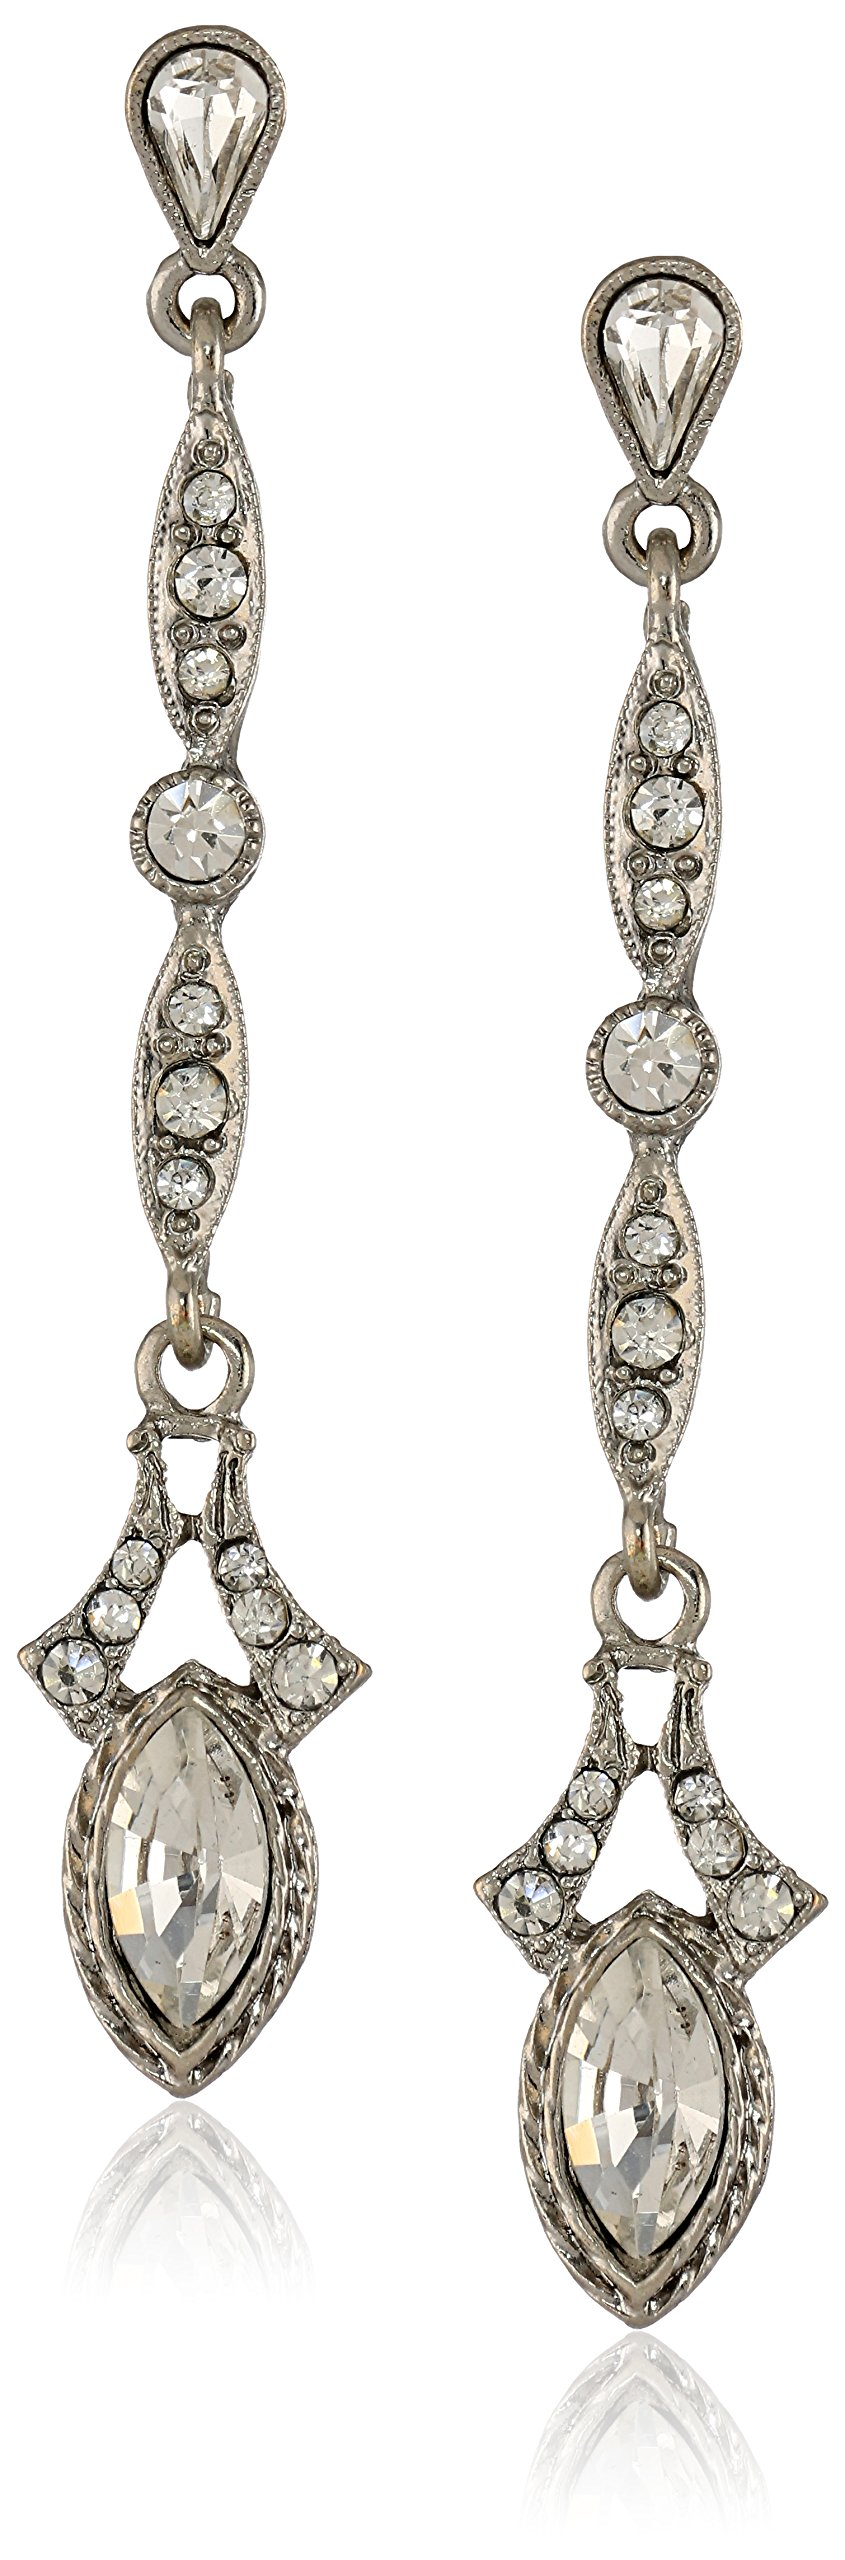 Downton Abbey''Jewelry Boxed Collection'' Silver-Tone Glass Crystal Drop Earrings by Downton Abbey